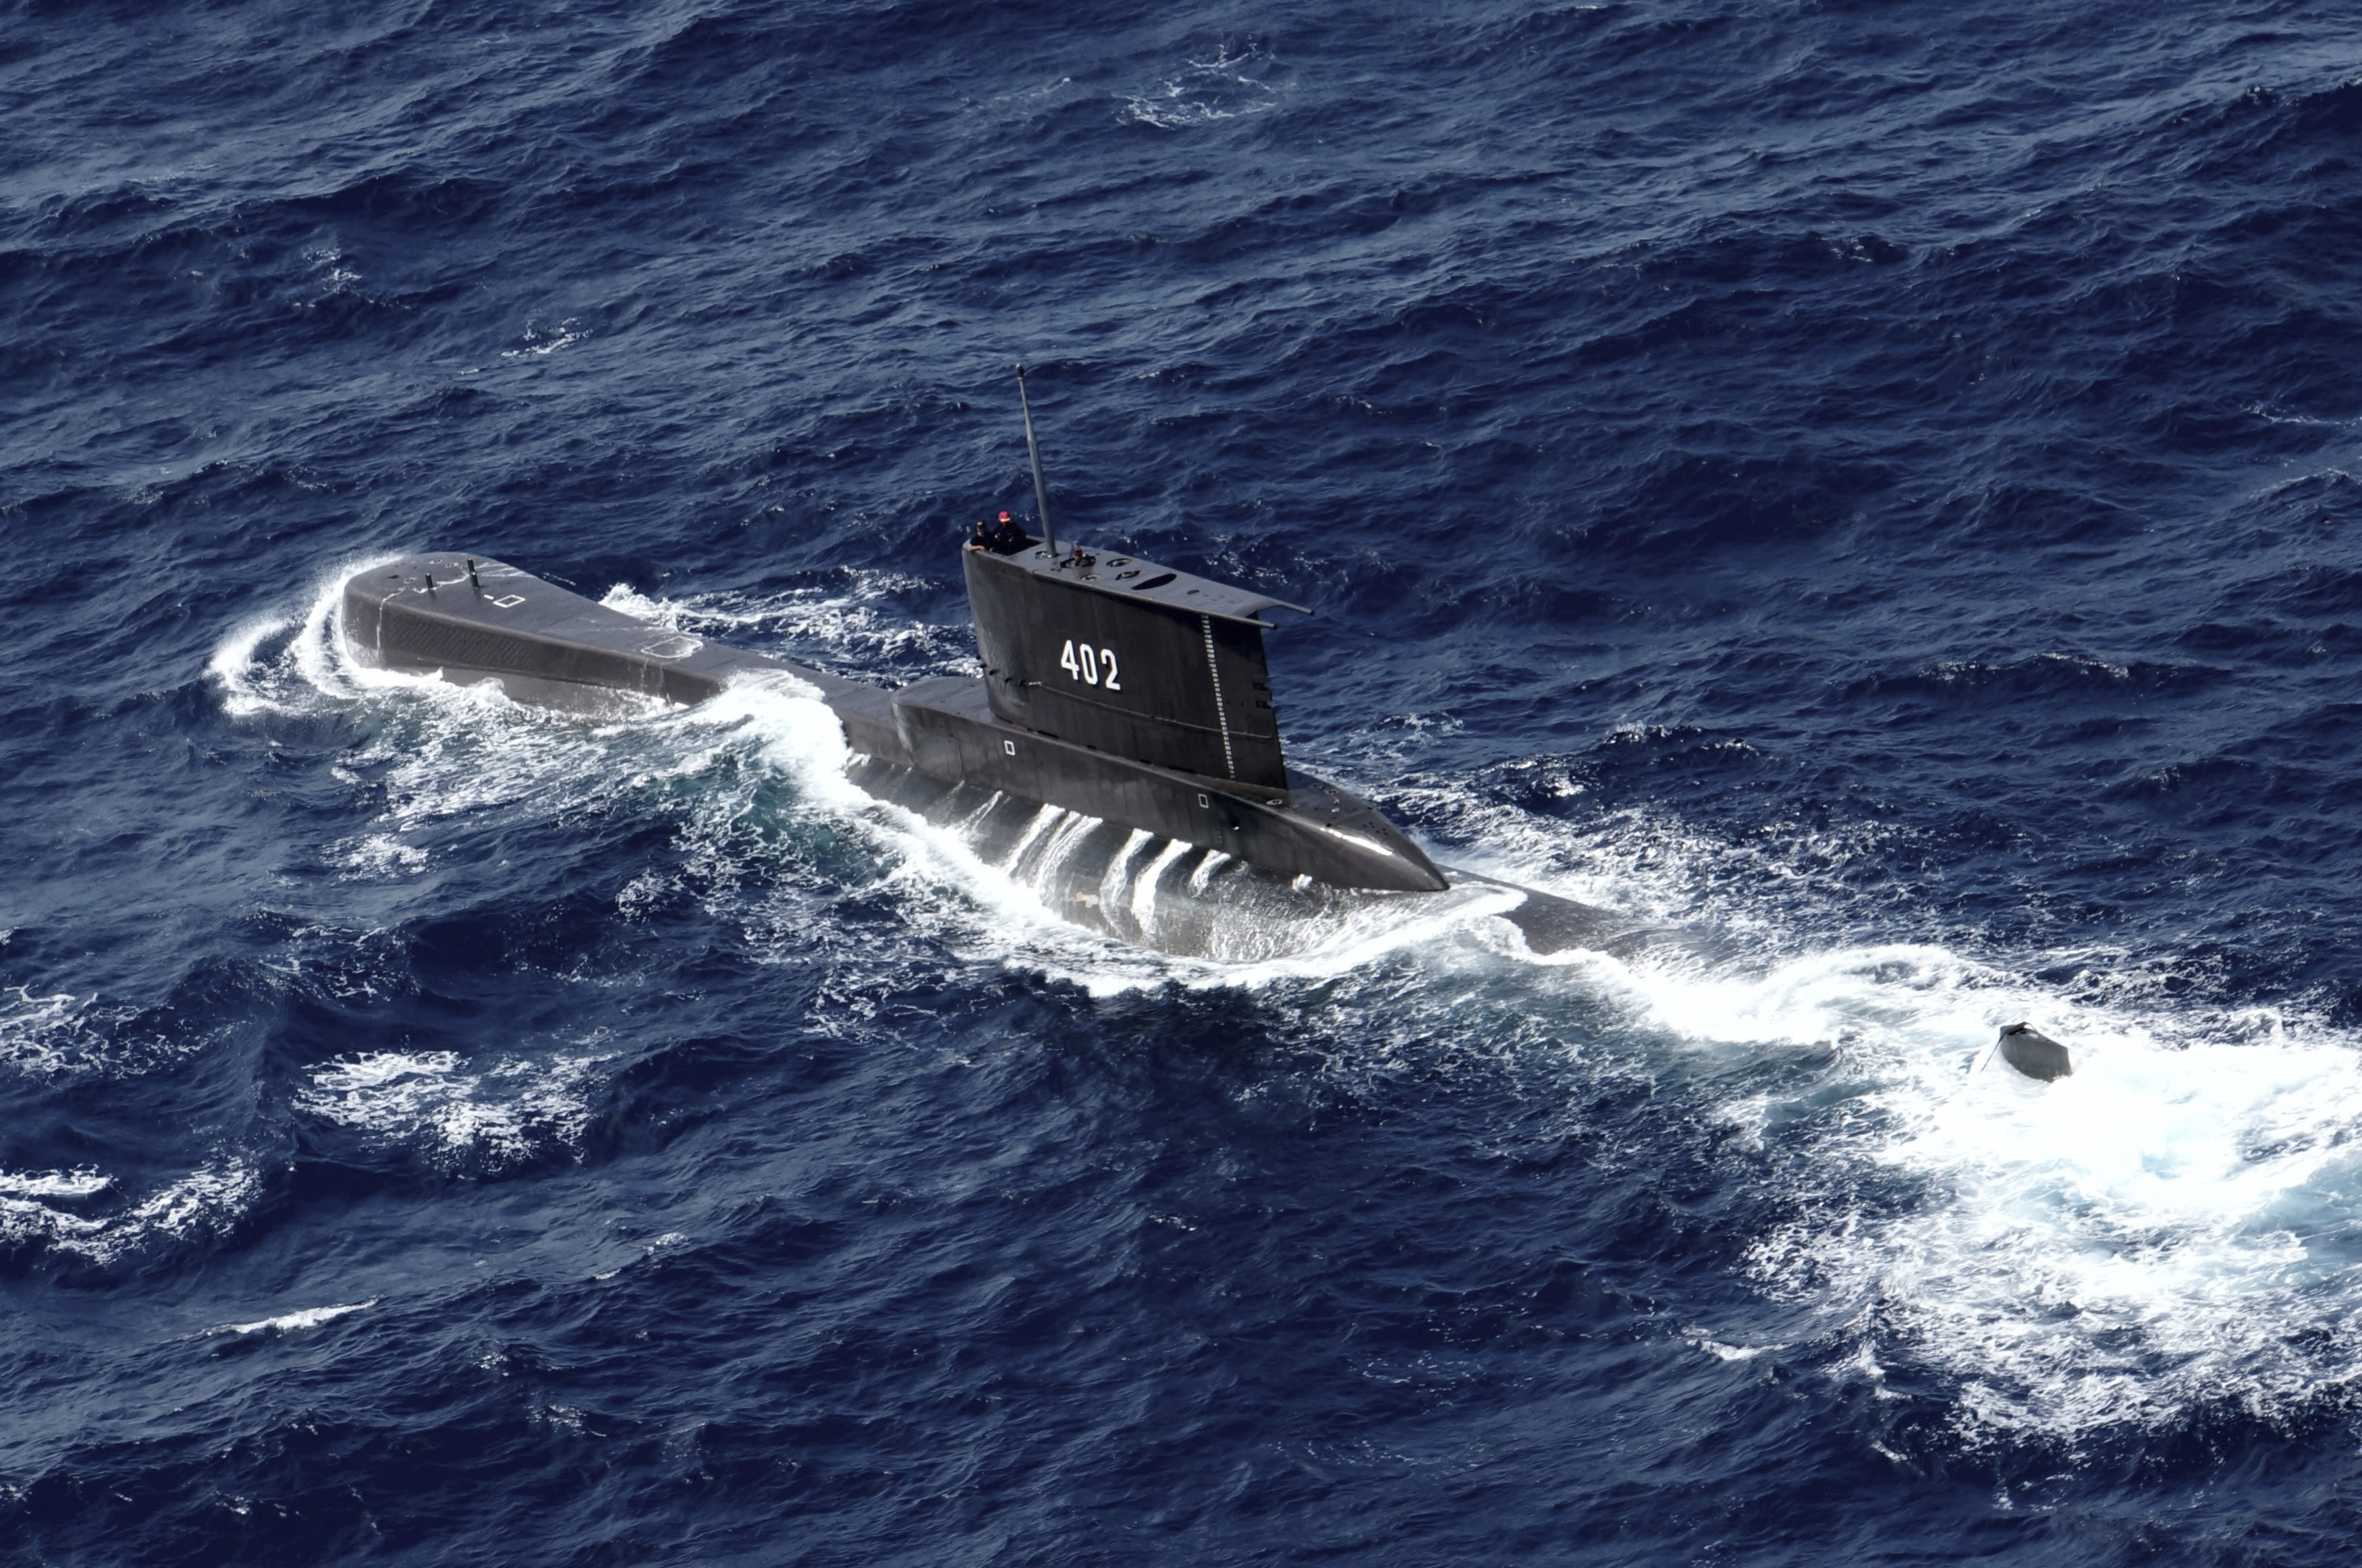 Indonesian Navy submarine KRI Nanggala sails in the waters off Tuban, East Java, Indonesia, as seen in this aerial photo taken from an Indonesian Navy helicopter on Monday, Oct. 6, 2014